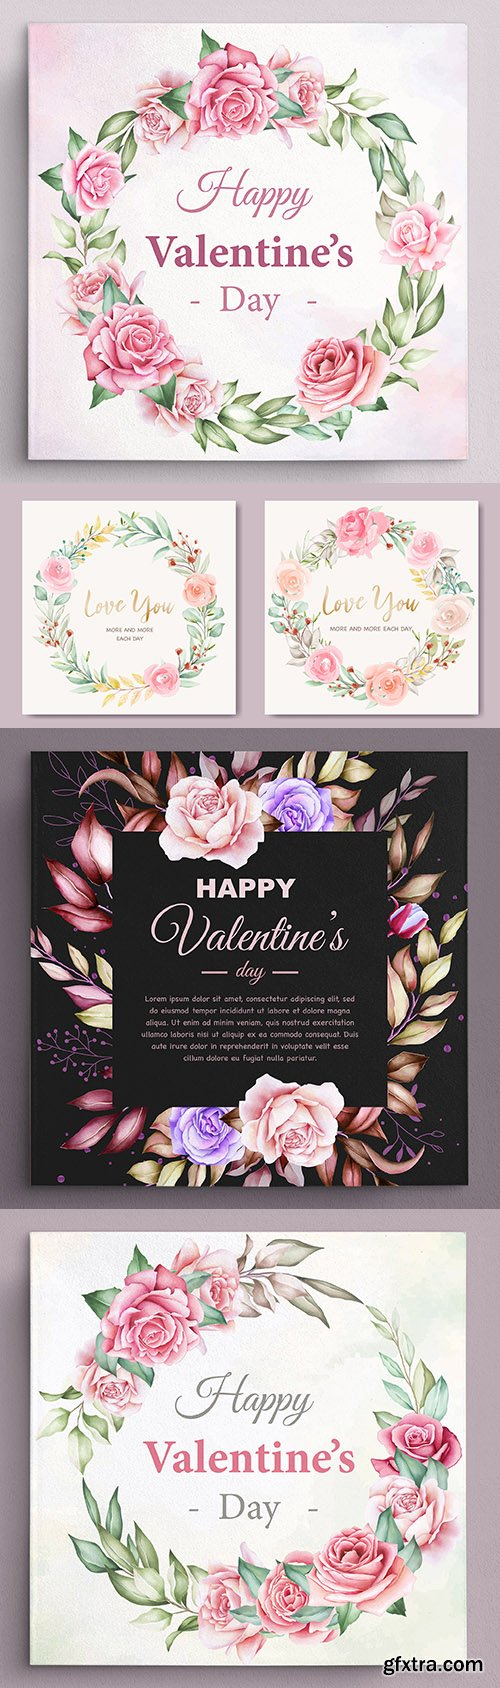 Valentine's Day greeting wreath flower card illustration